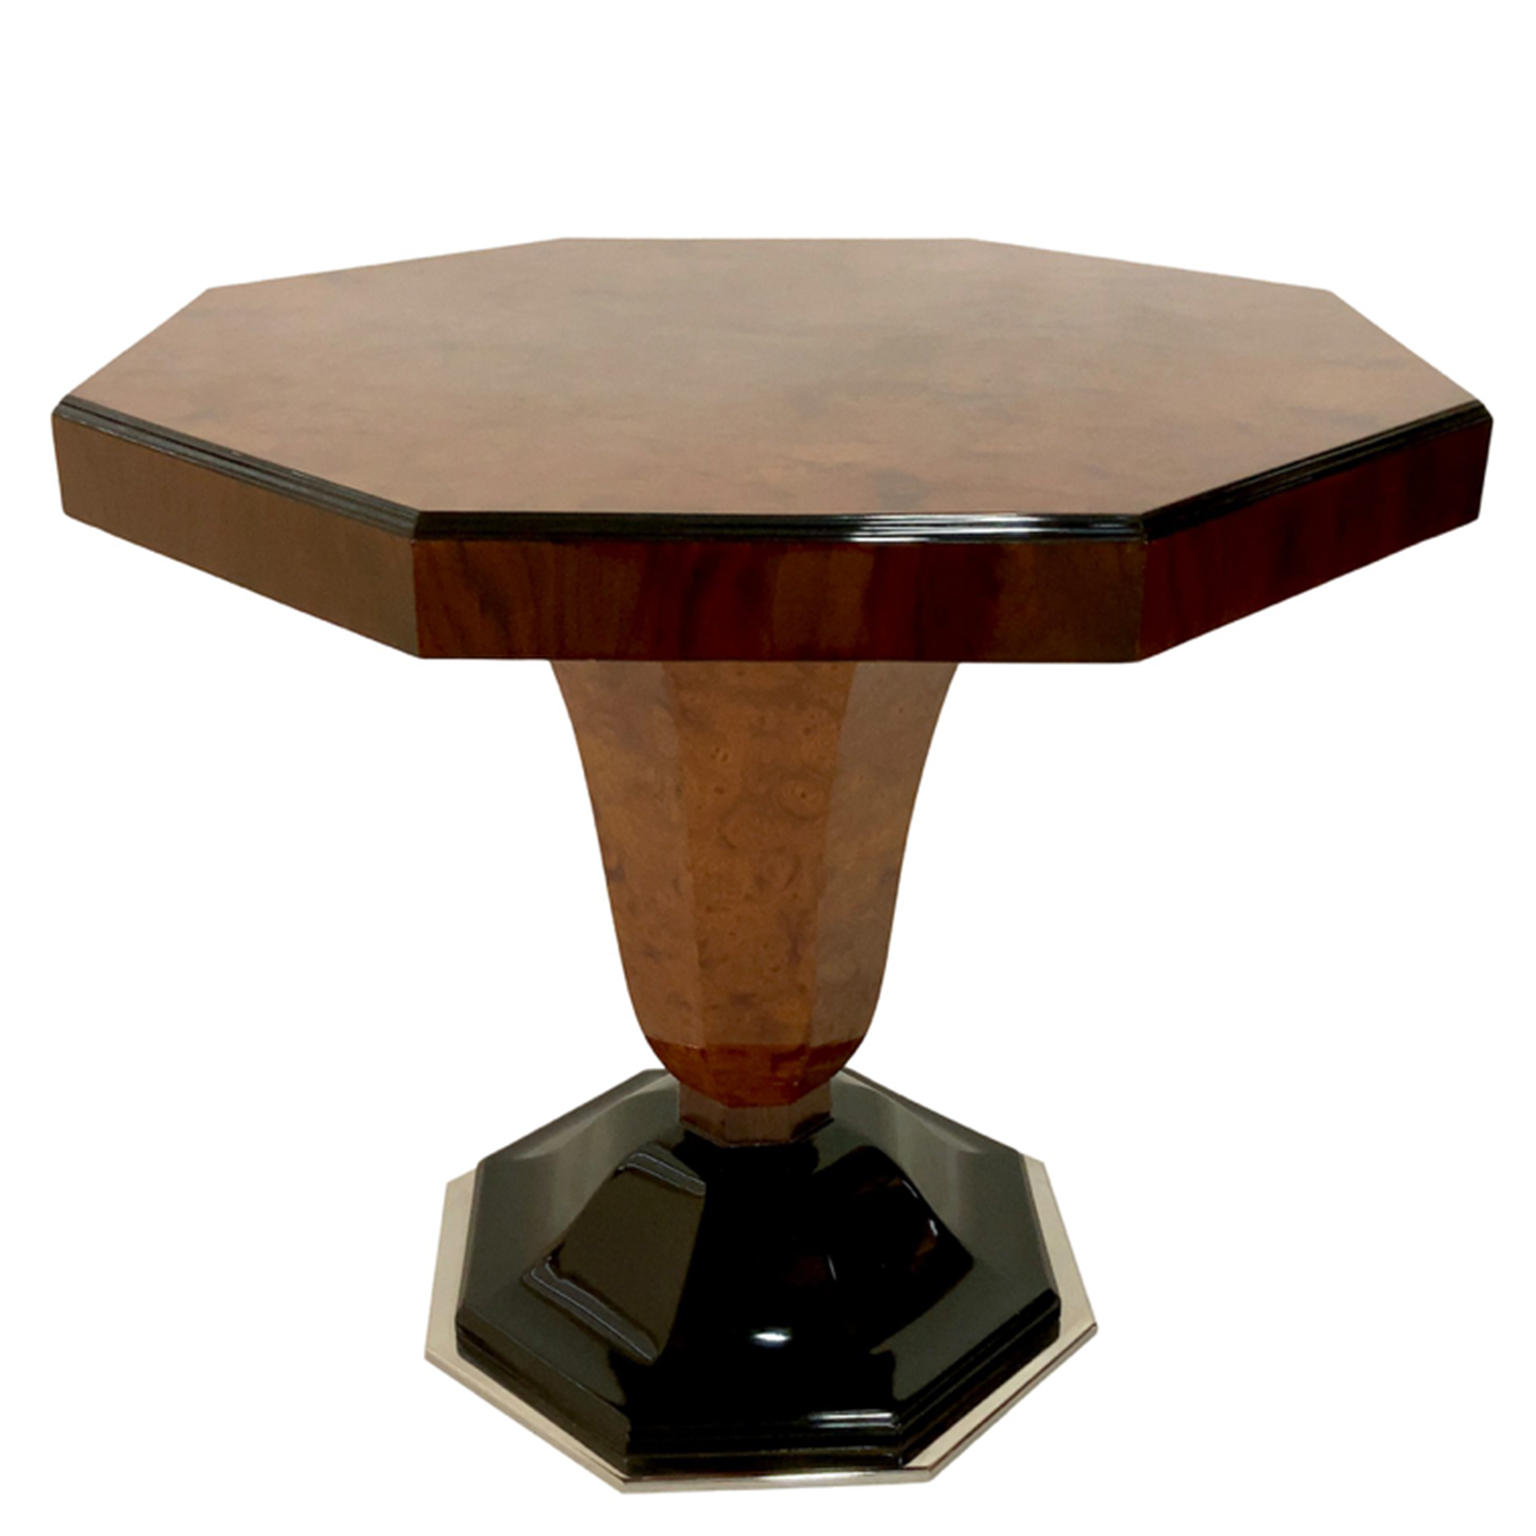 Art Deco octagonal side table with black lacquer detailing and chrome-plated bottom